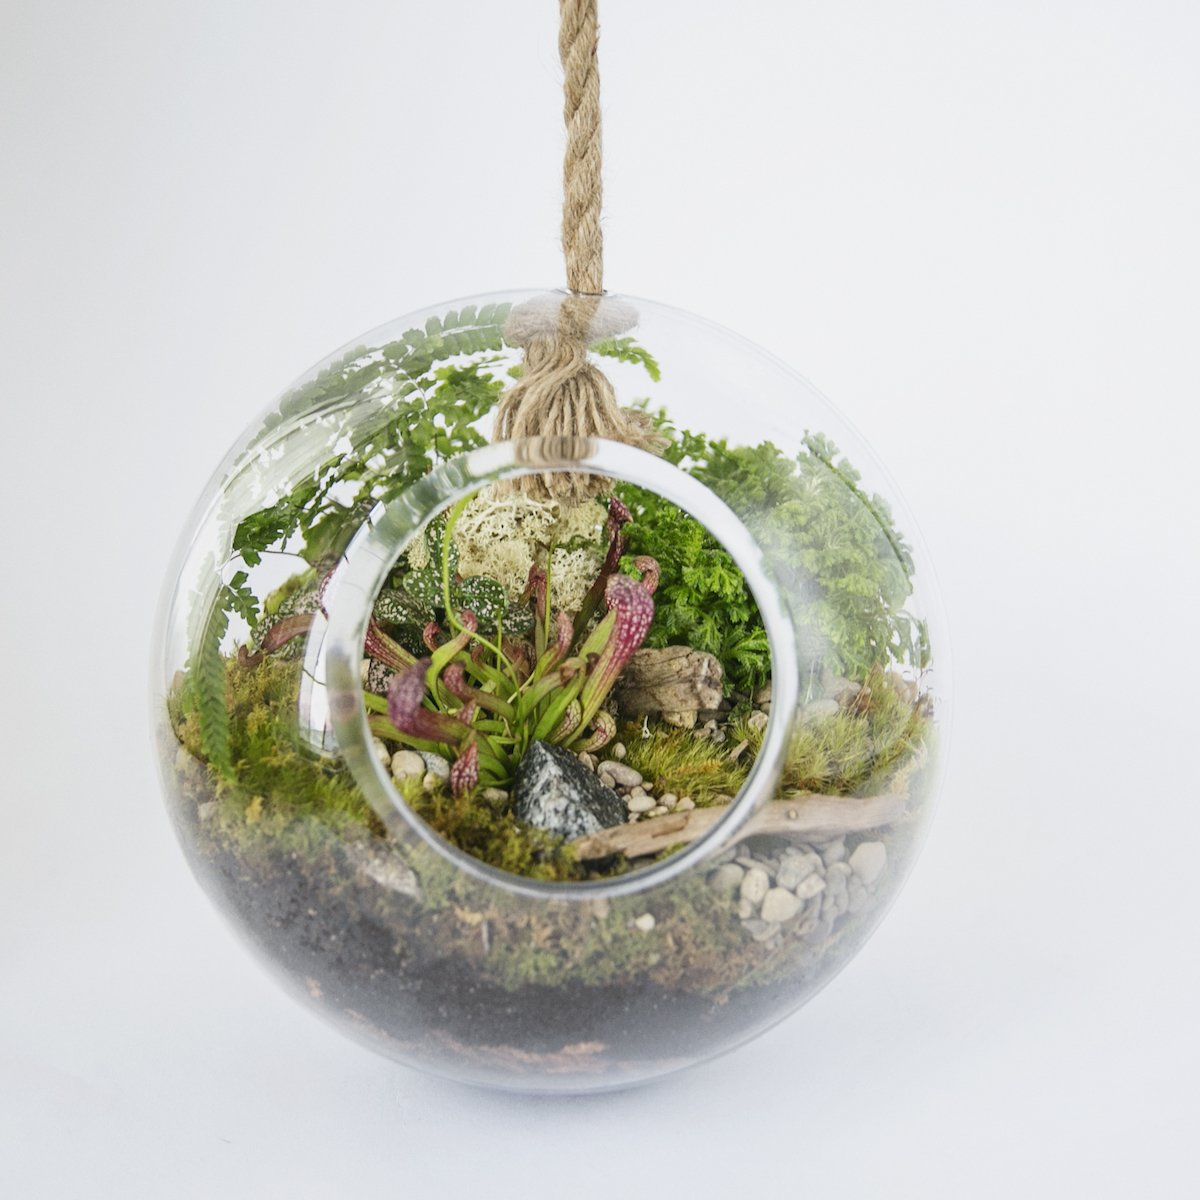 Cheap Diy Glass Terrarium Find Diy Glass Terrarium Deals On Line At